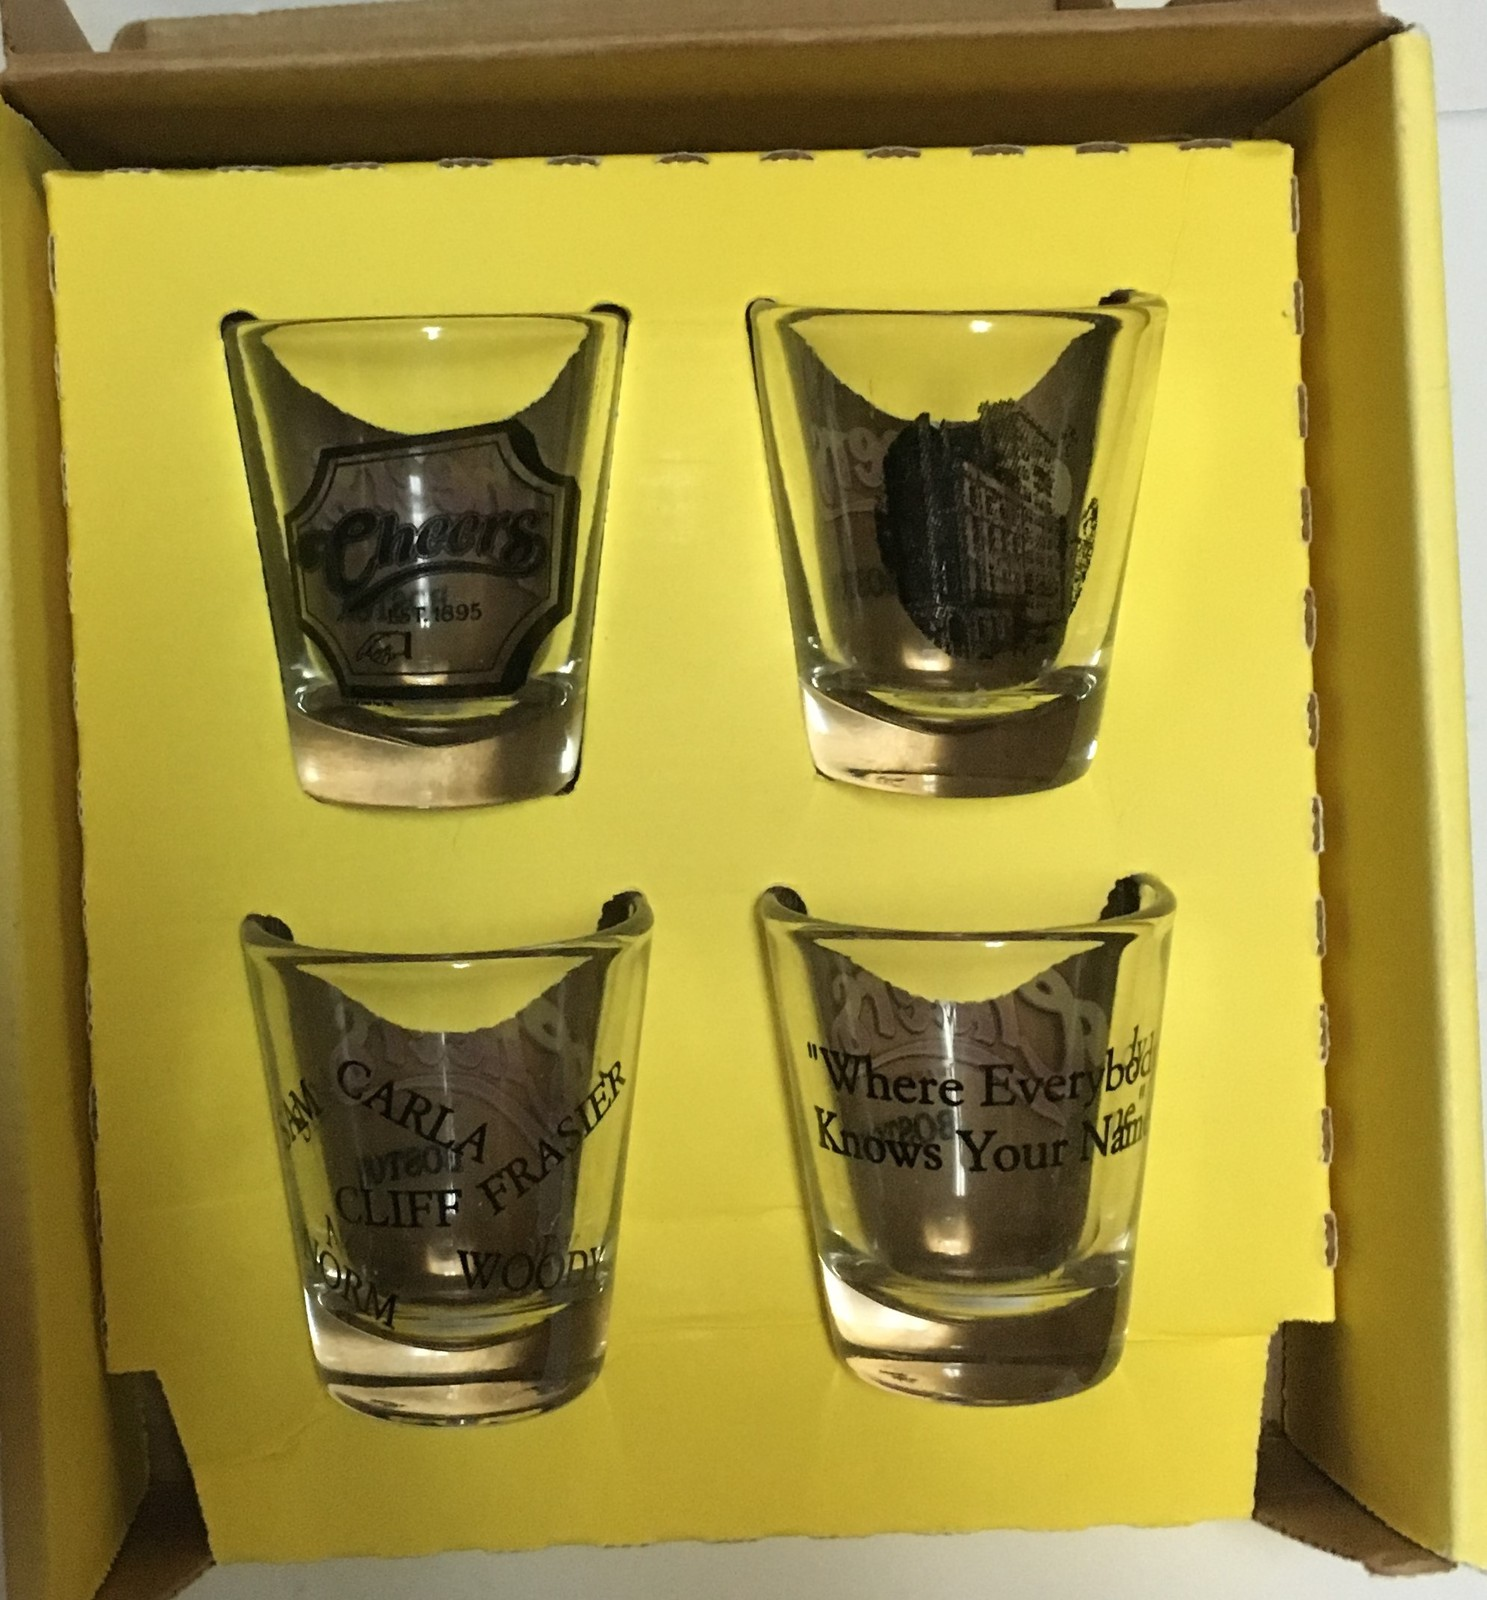 CHEERS TV Show Shot Glasses Set of 4 Boston Where Everybody Knows Your Name